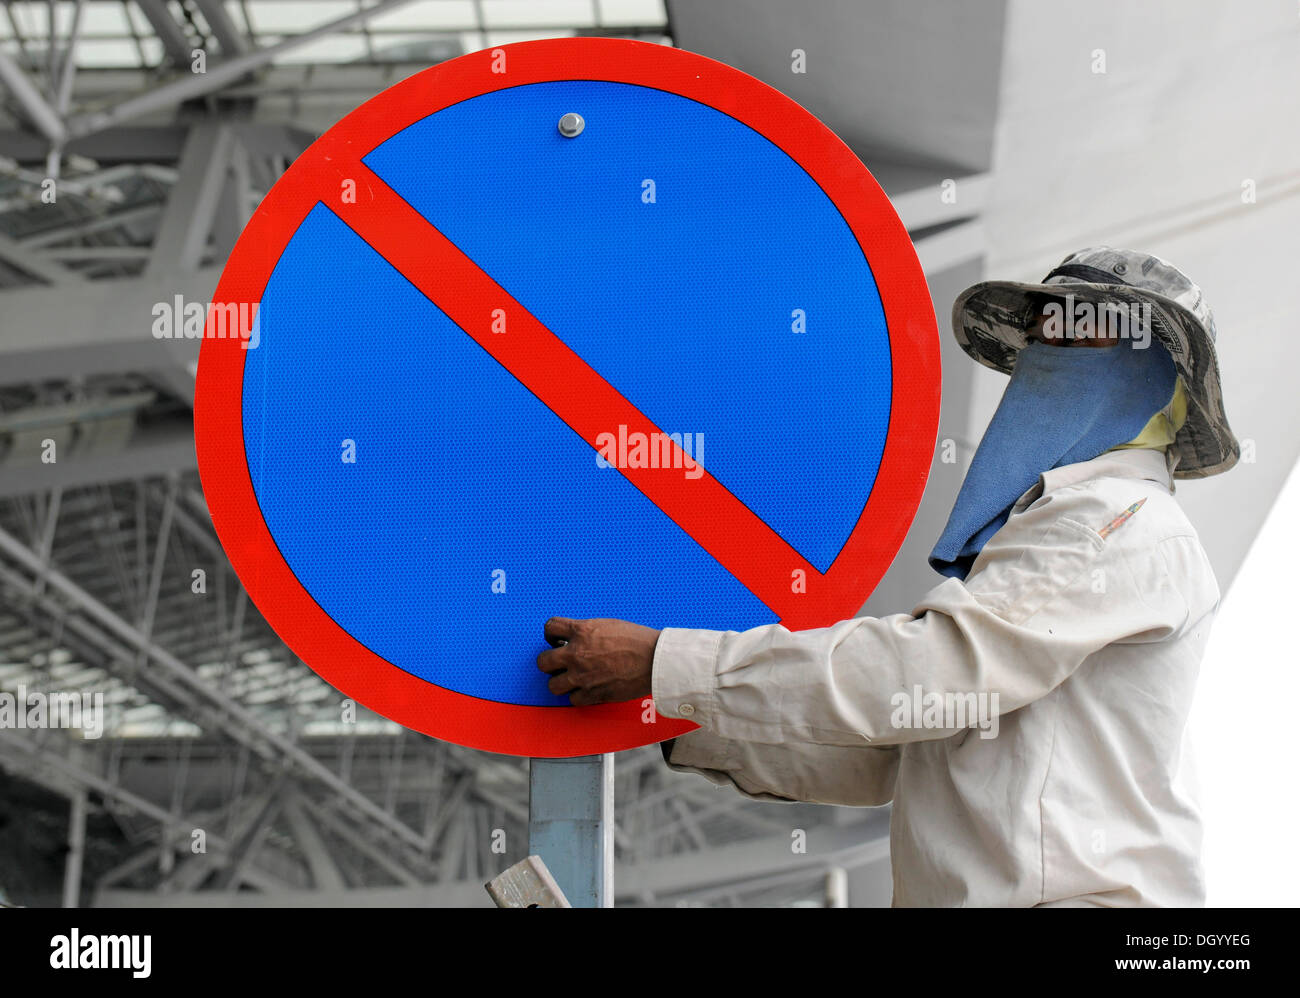 Man mounting a no-parking sign, Chiang Mai, Thailand, Asia - Stock Image